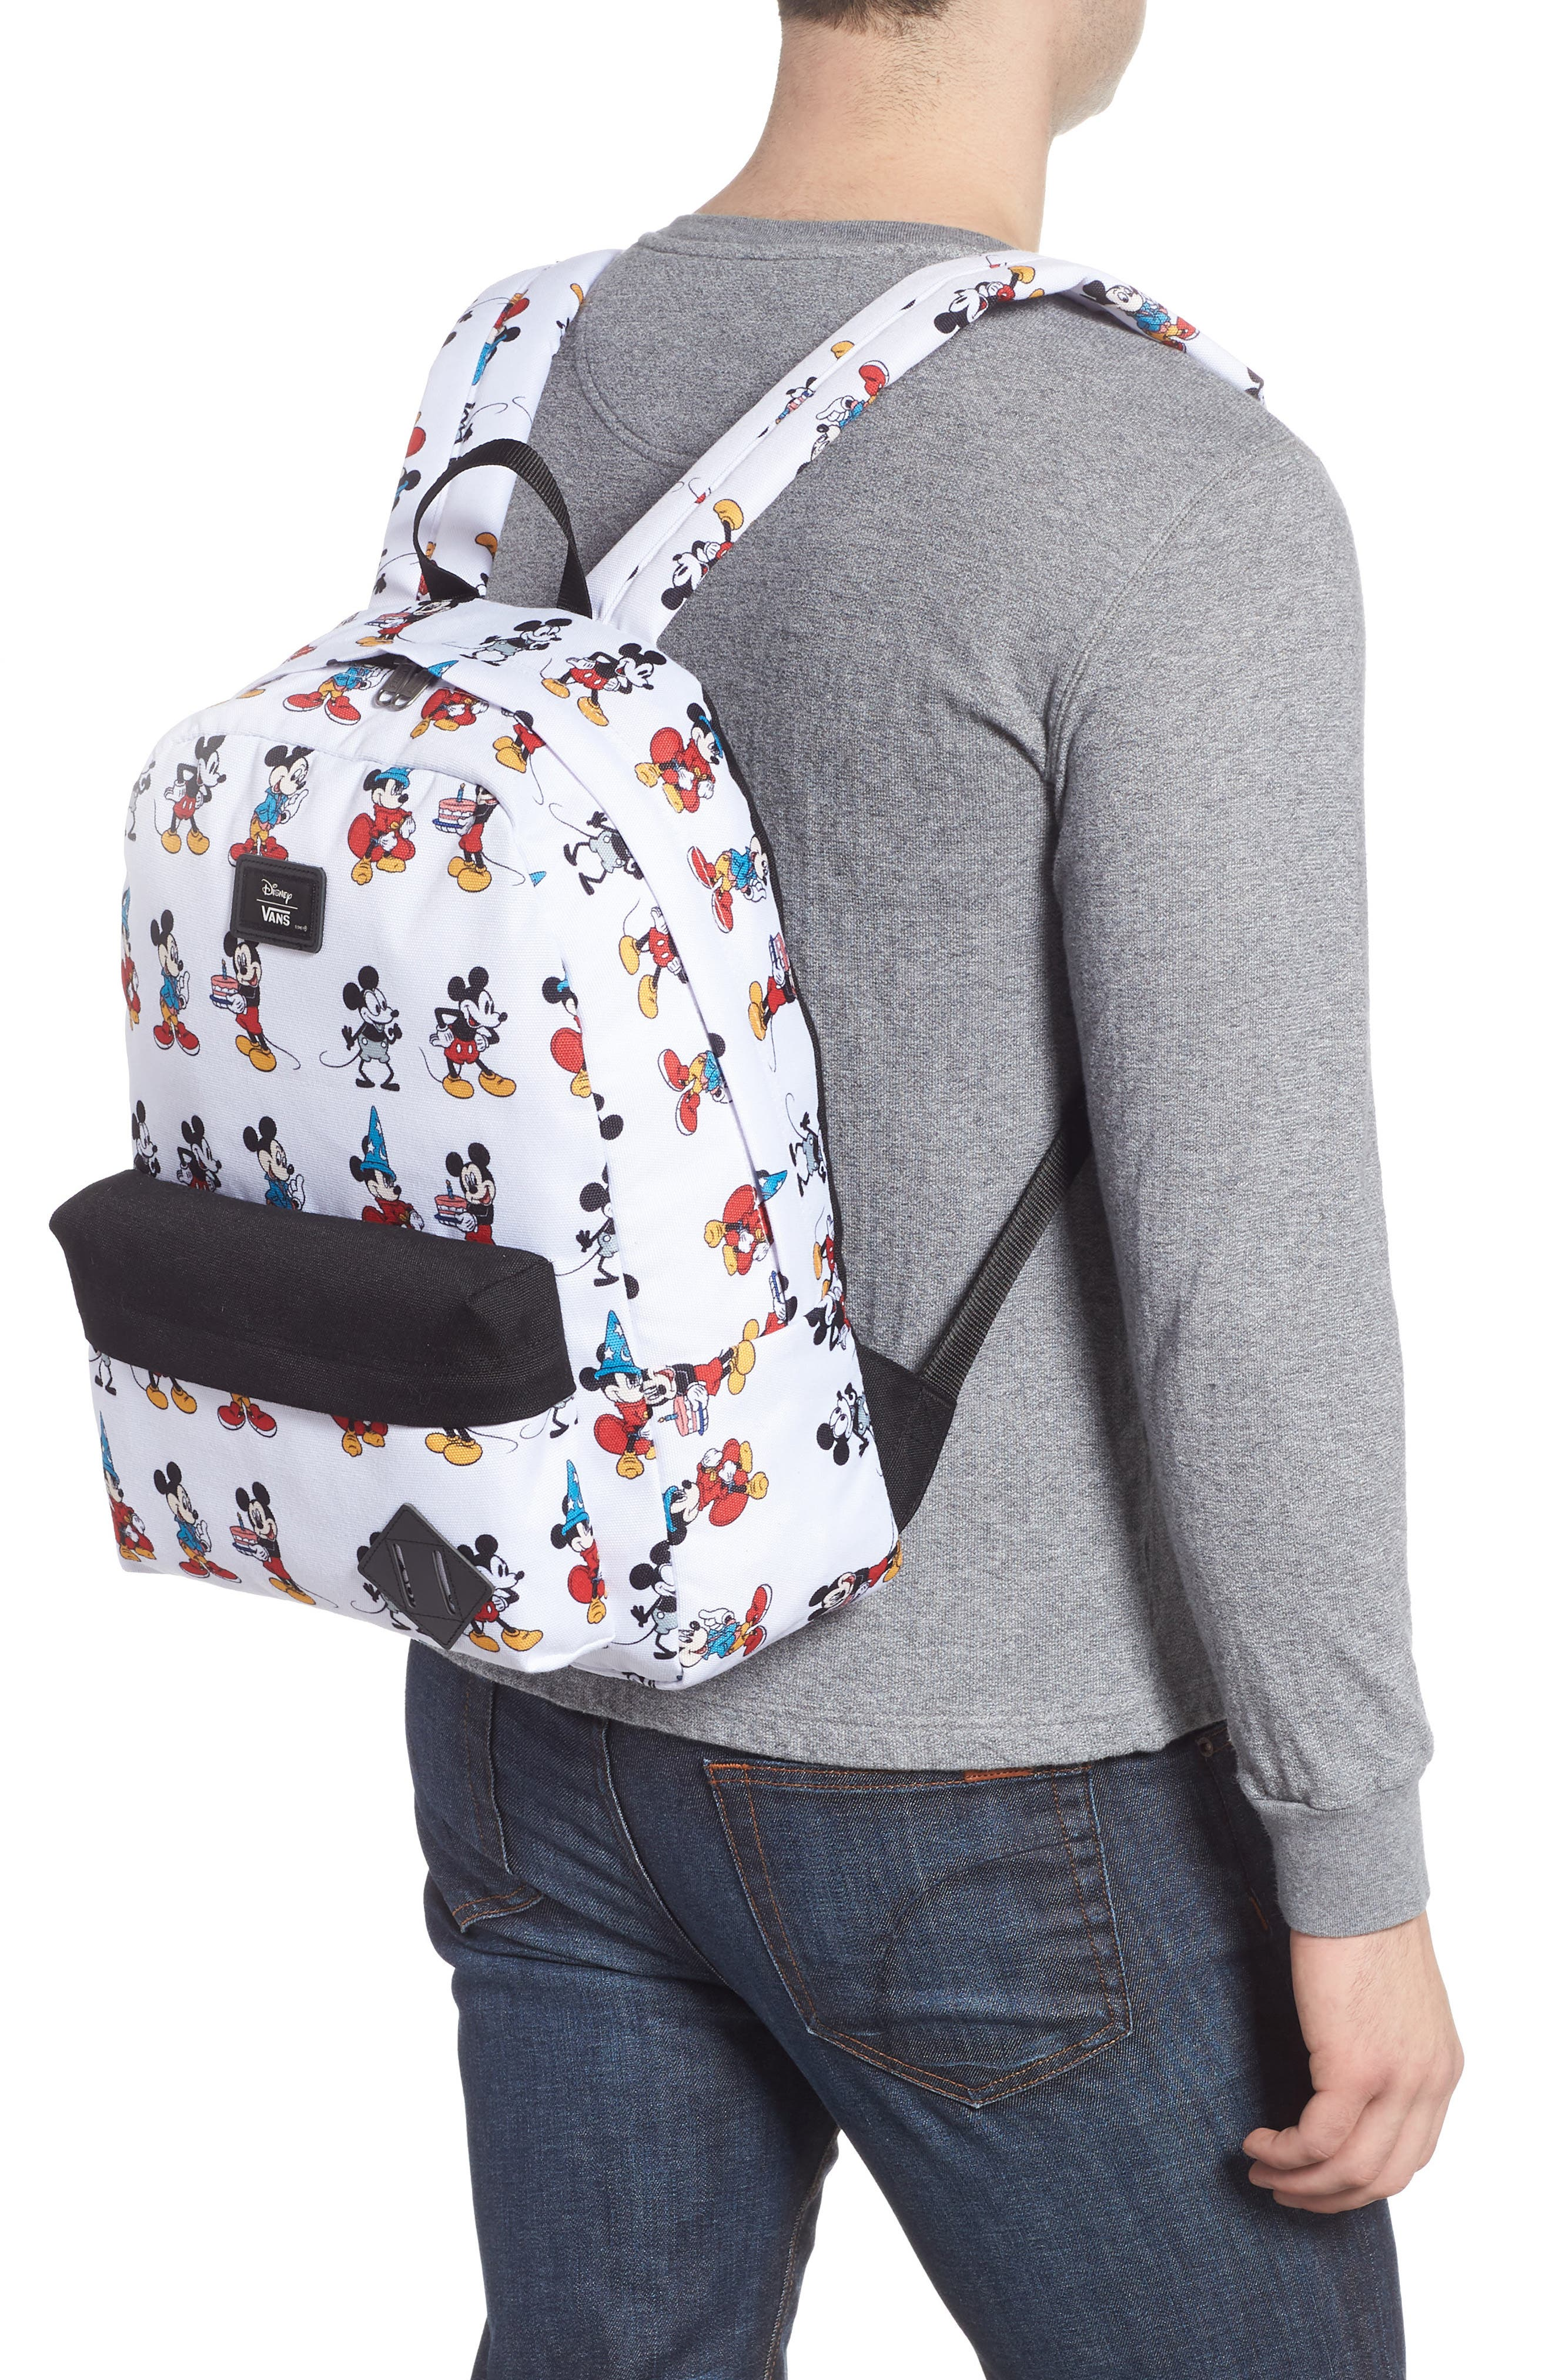 x Disney Mickey's 90th Anniversary - Mickey Through the Ages Backpack,                             Alternate thumbnail 2, color,                             WHITE